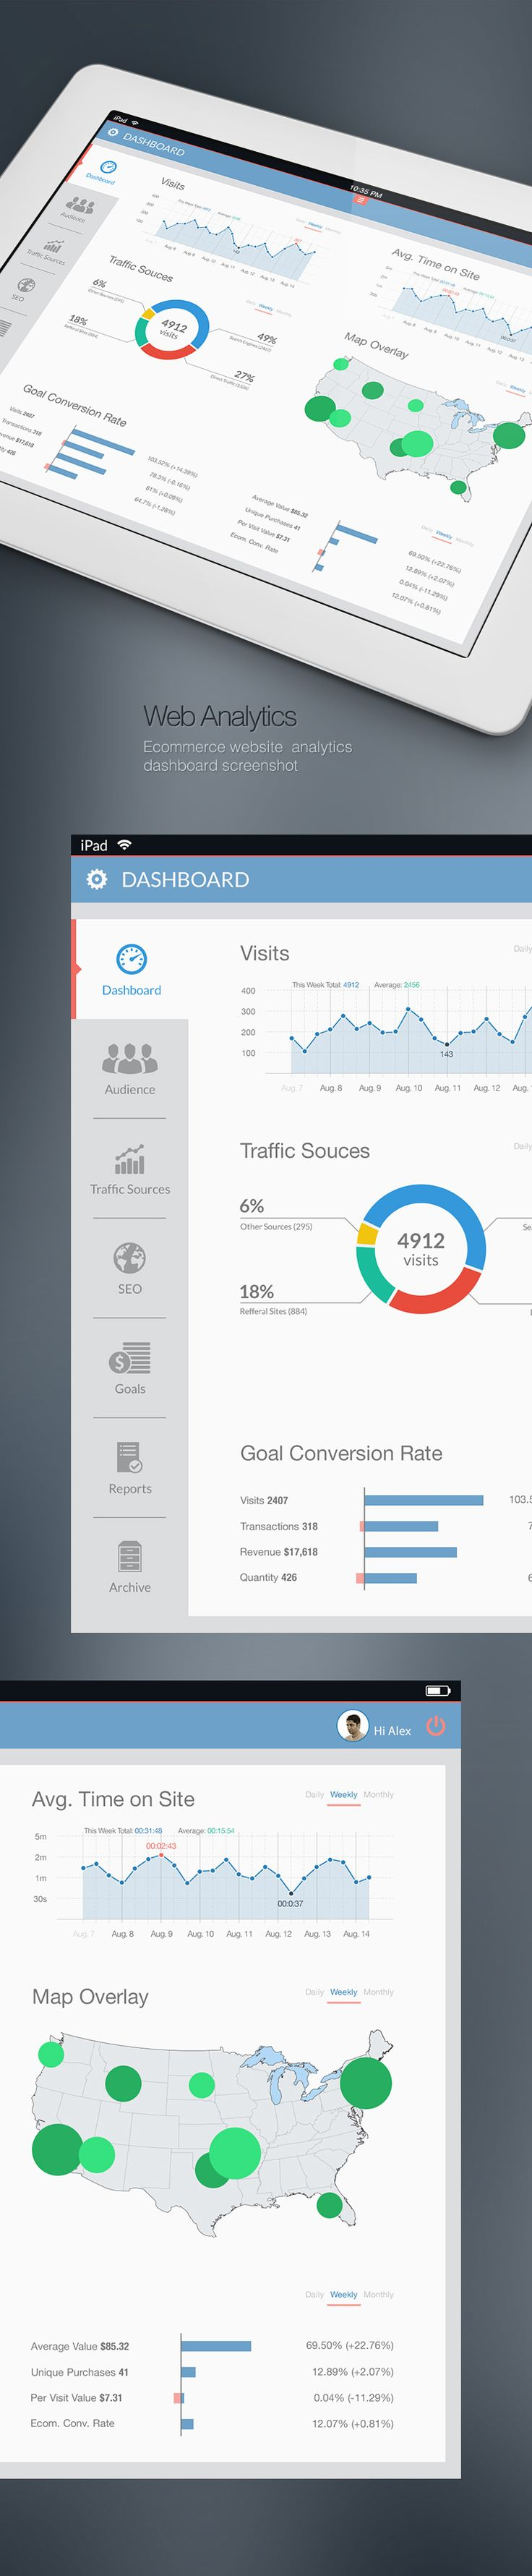 Ecommerce Website Analytics Dashboard Screenshot